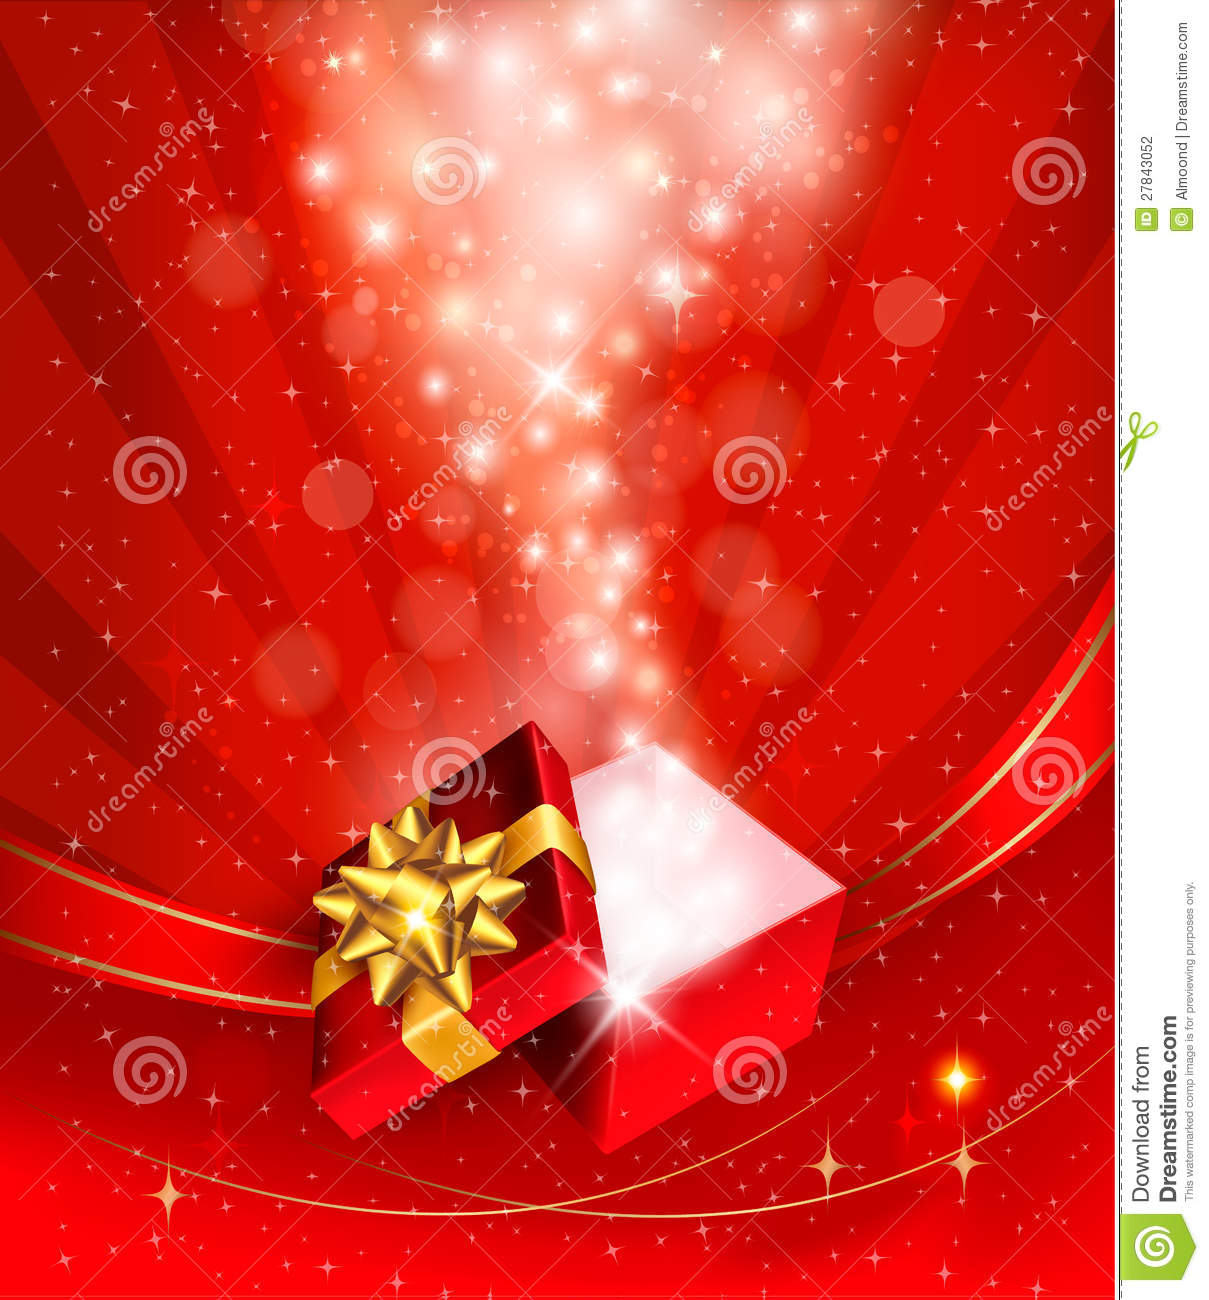 christmas background with open gift box stock vector